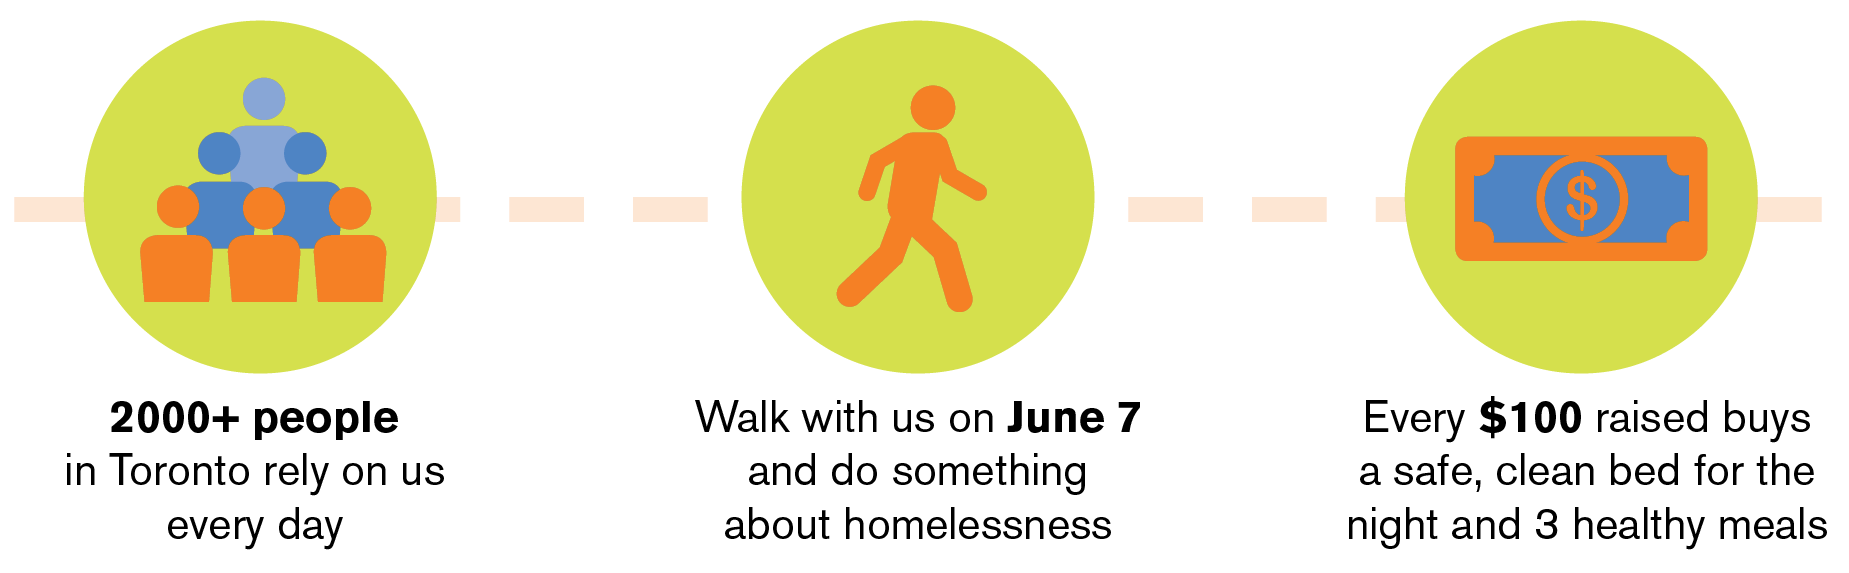 Colorful icons shows the ways one can participate in this walkathon